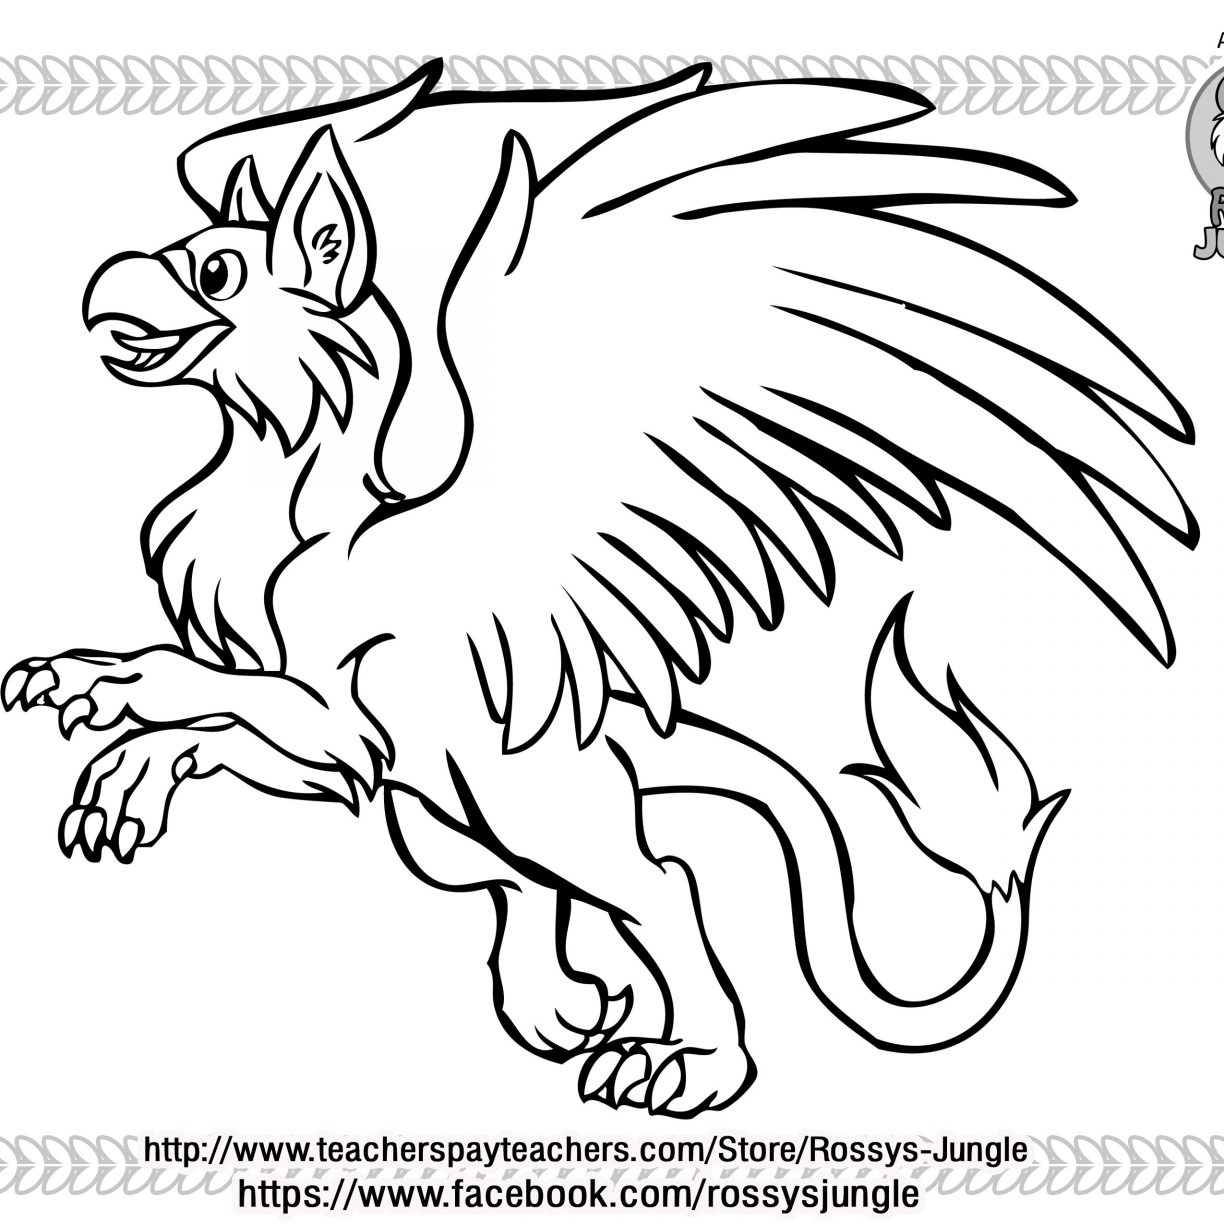 1224x1224 Gryphon Colorings Unusual For Kids Griffin Coloring Pages Adults